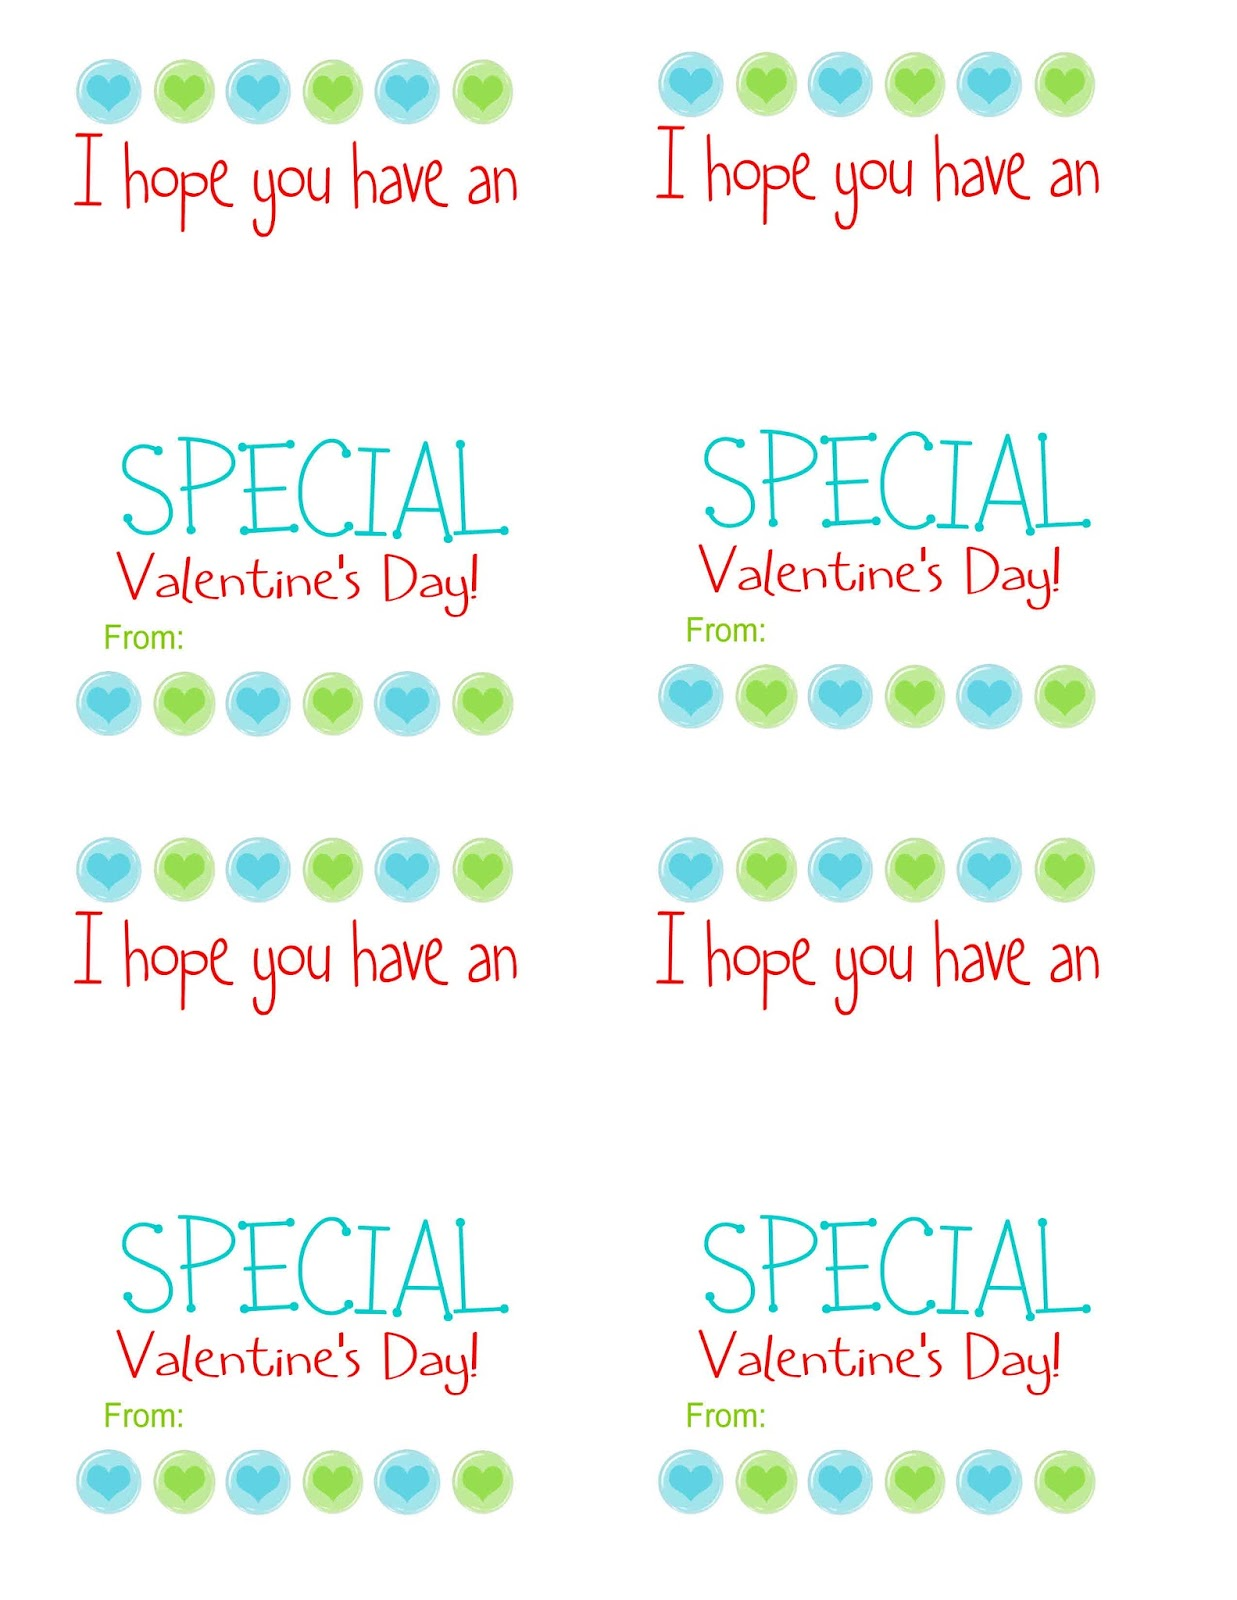 photo about Extra Gum Valentine Printable titled Superior Loved ones Favorites: Valentines Working day Handle Printables